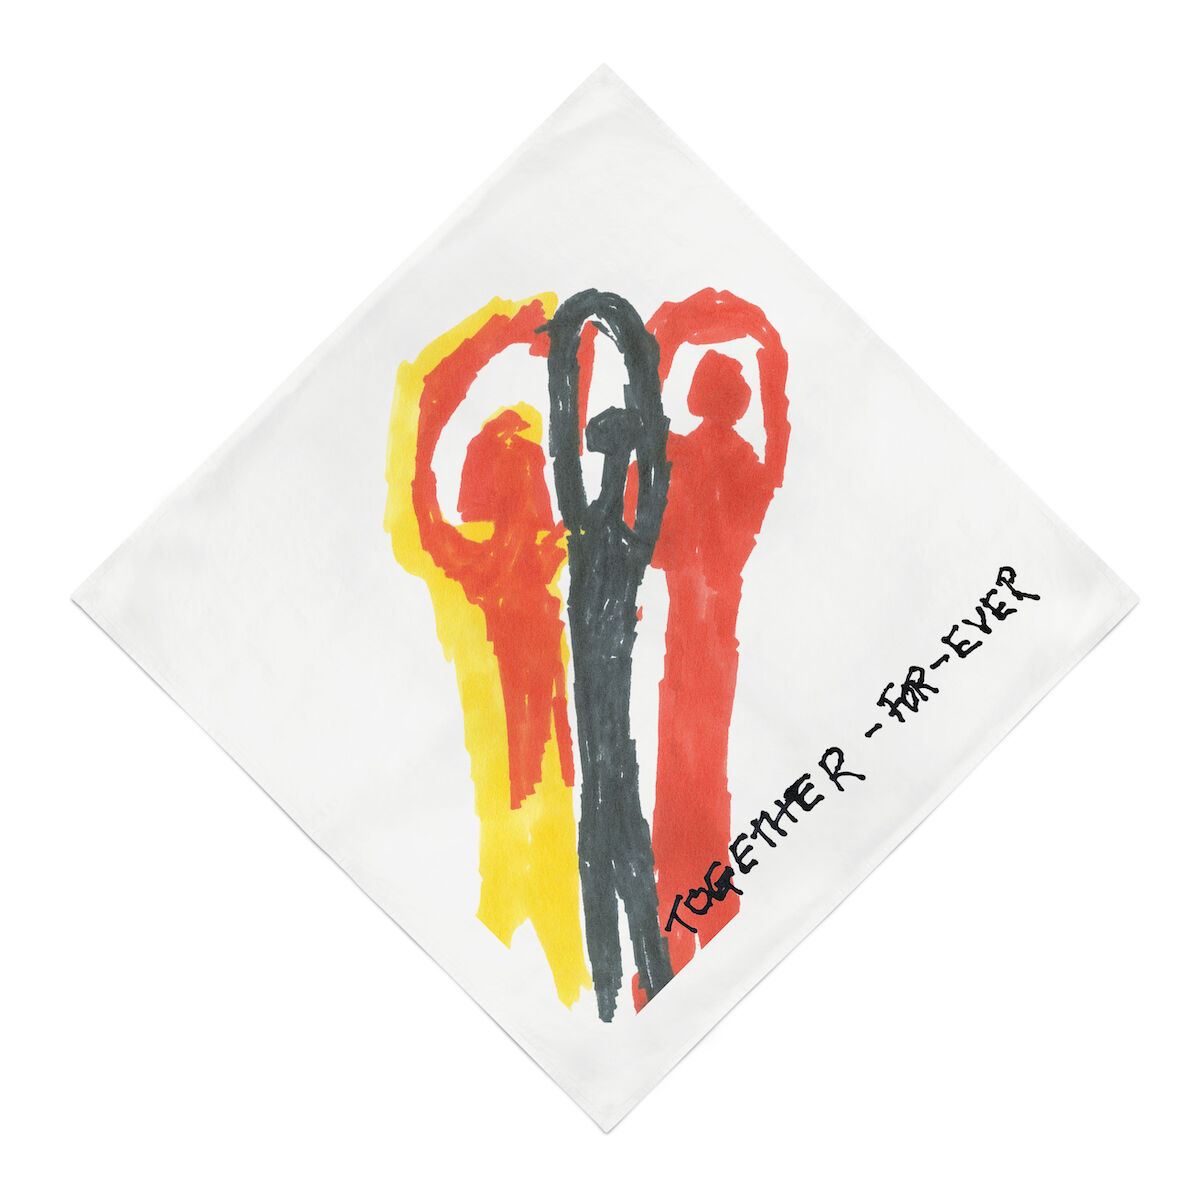 """A bandana design for """"Artists Band Together"""" by Luchita Hurtado. Courtesy Artists Band Together."""